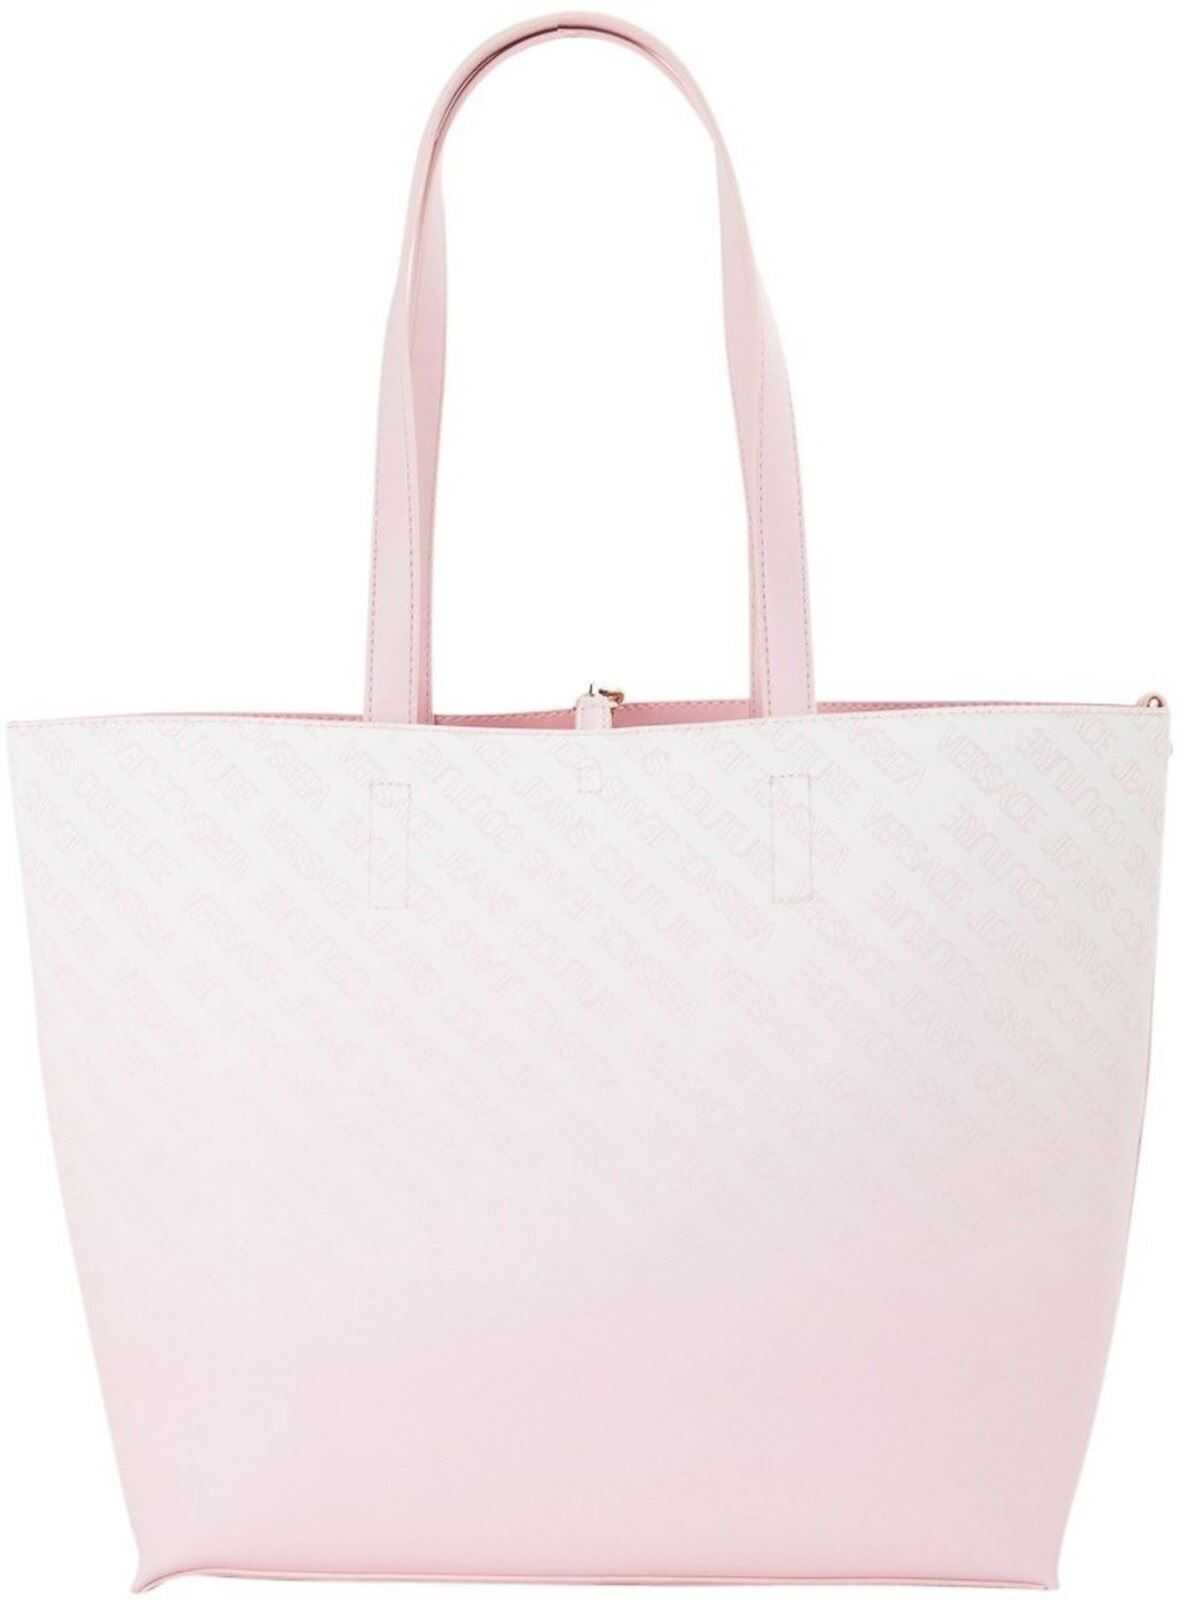 Versace Jeans Couture Faux Leather Tote In Pink E1VWAB6171899426 Pink imagine b-mall.ro